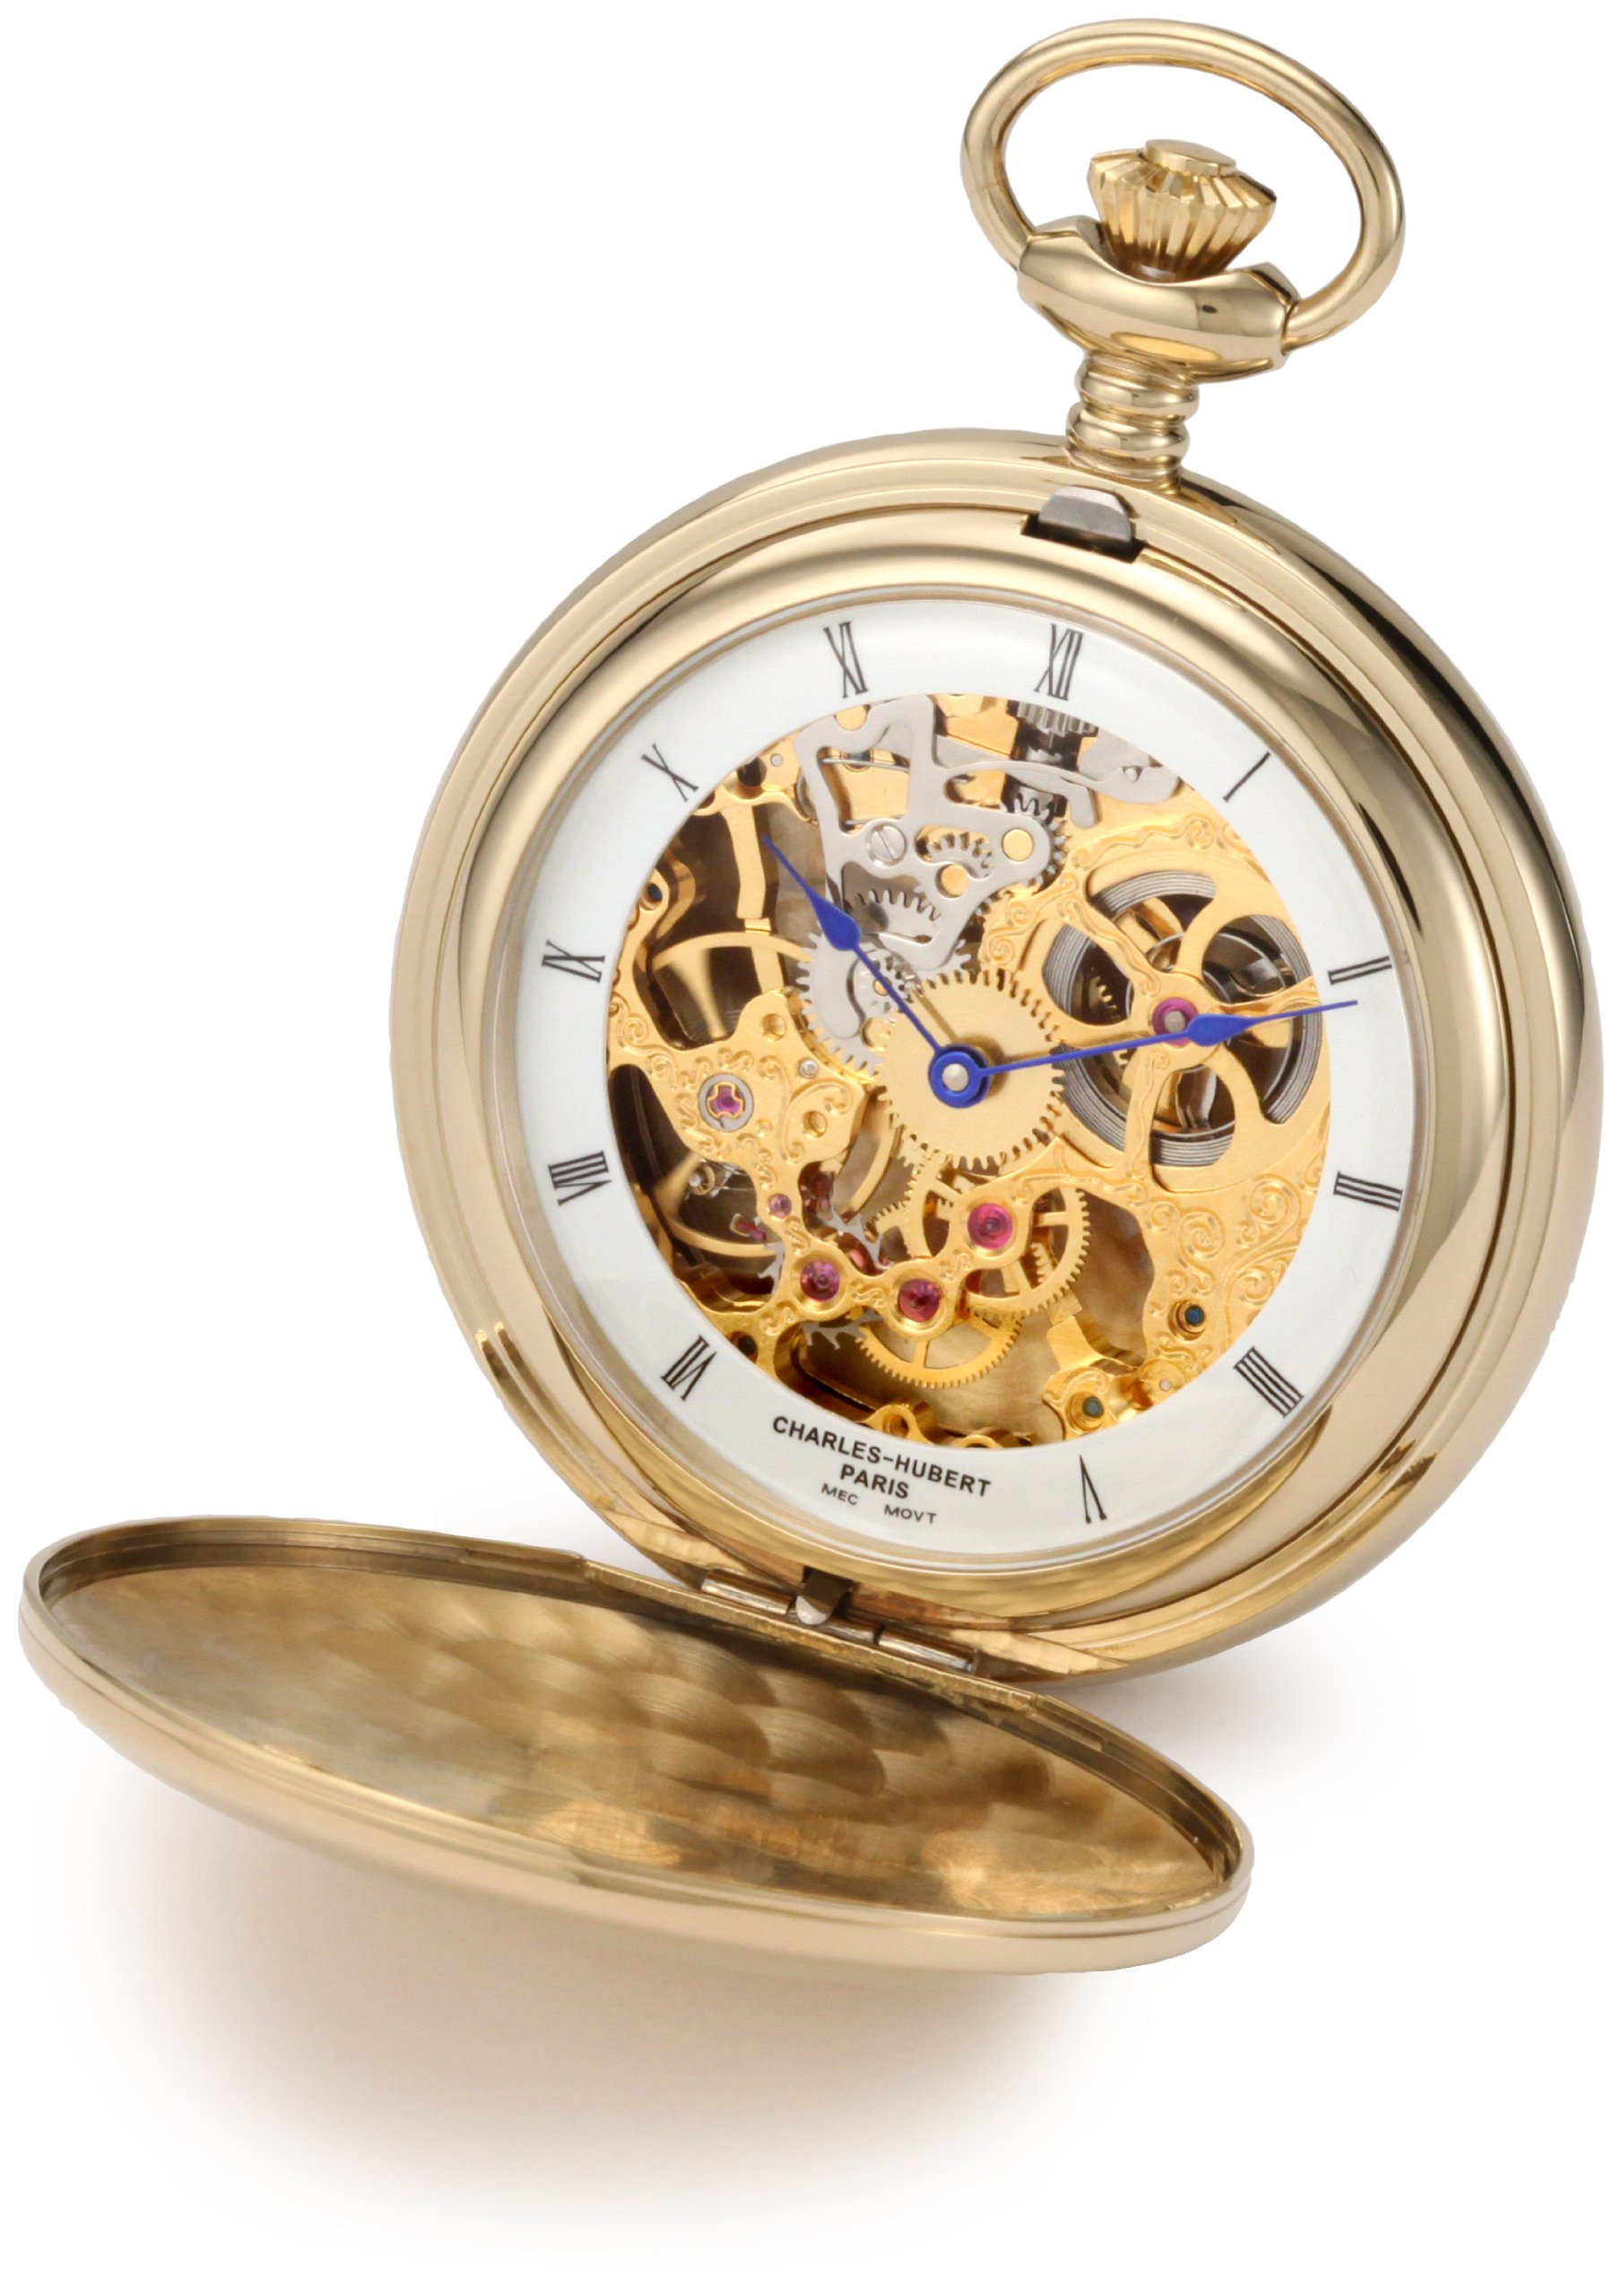 CDM product Charles-Hubert, Paris 3904-G Premium Collection Gold-Plated Stainless Steel Polished Finish Double Hunter Case Mechanical Pocket Watch big image